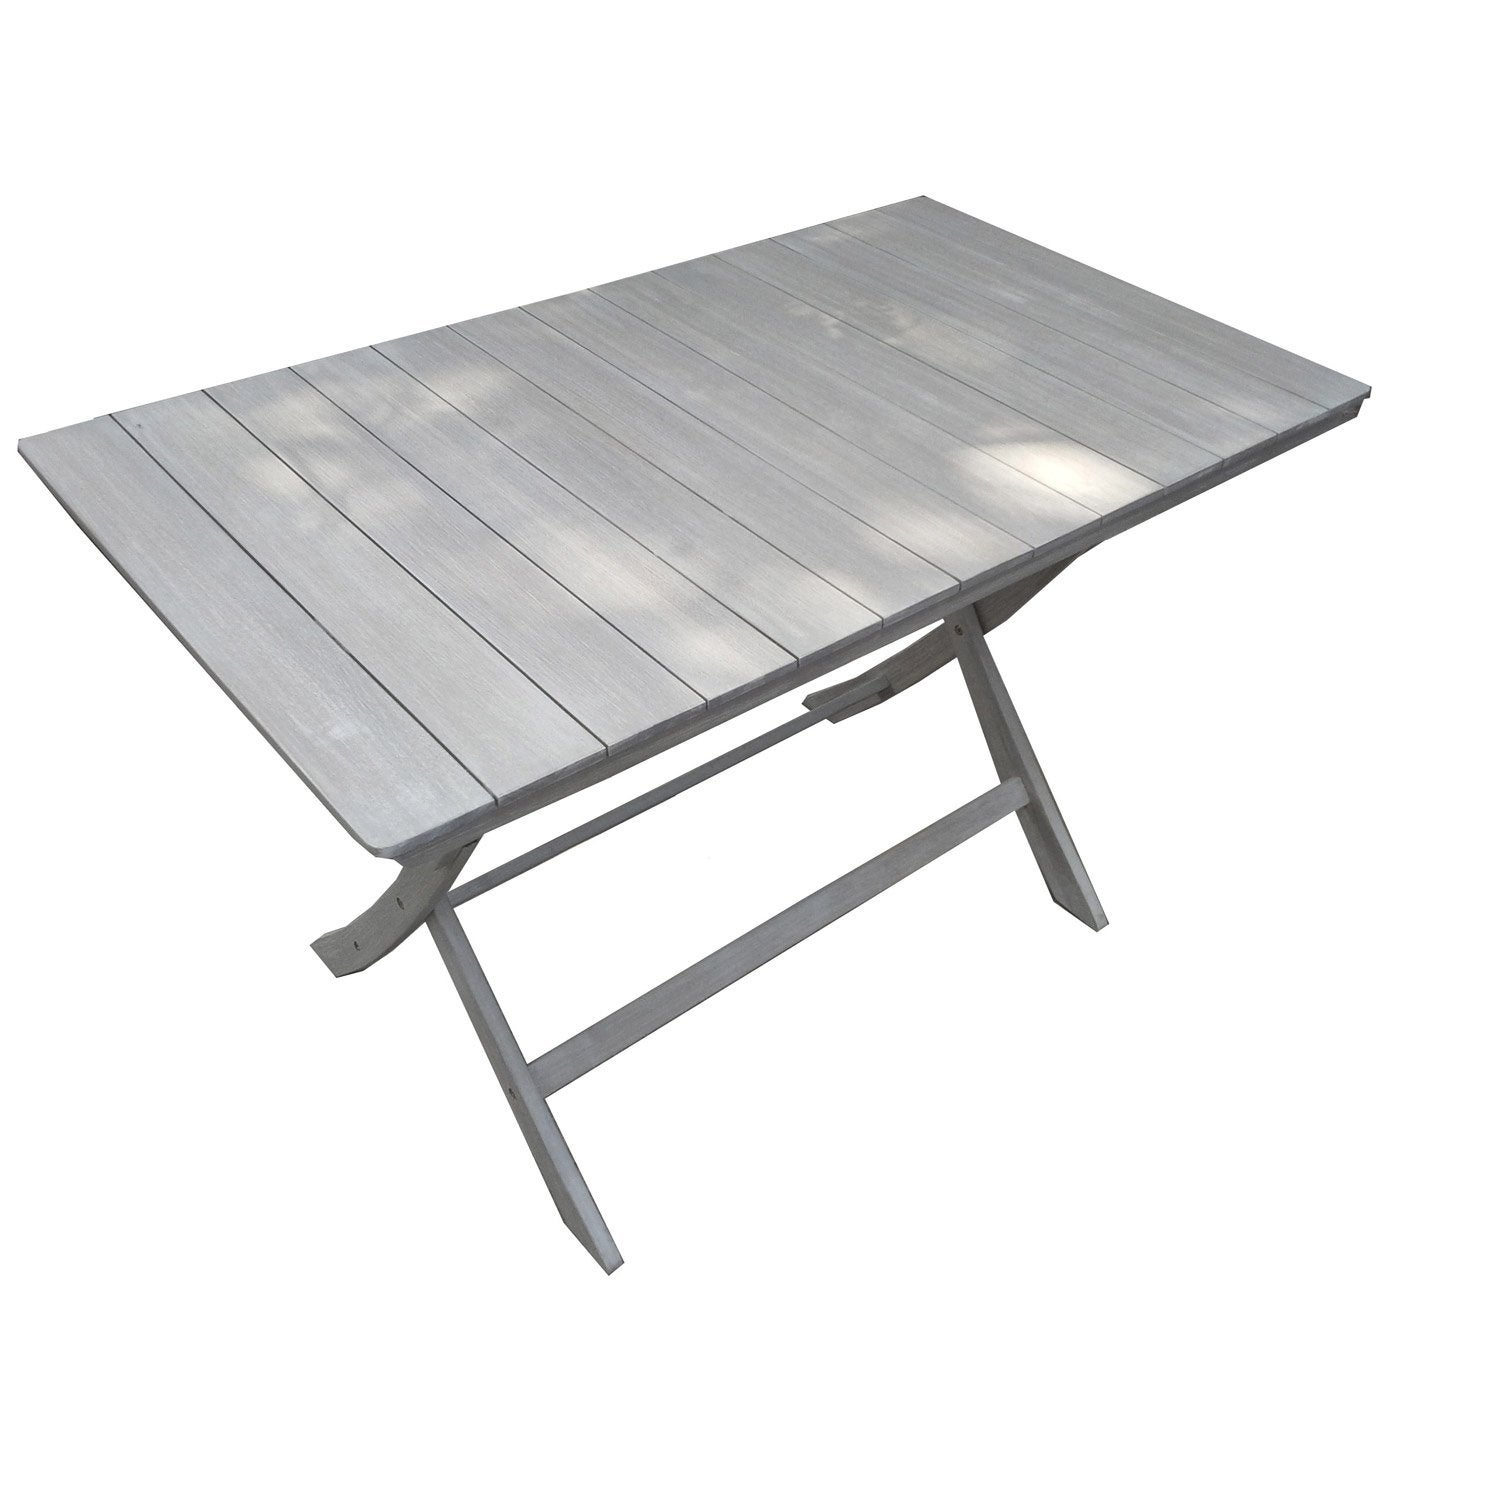 Table de jardin naterial portofino rectangulaire gris 4 for Table de nuit leroy merlin